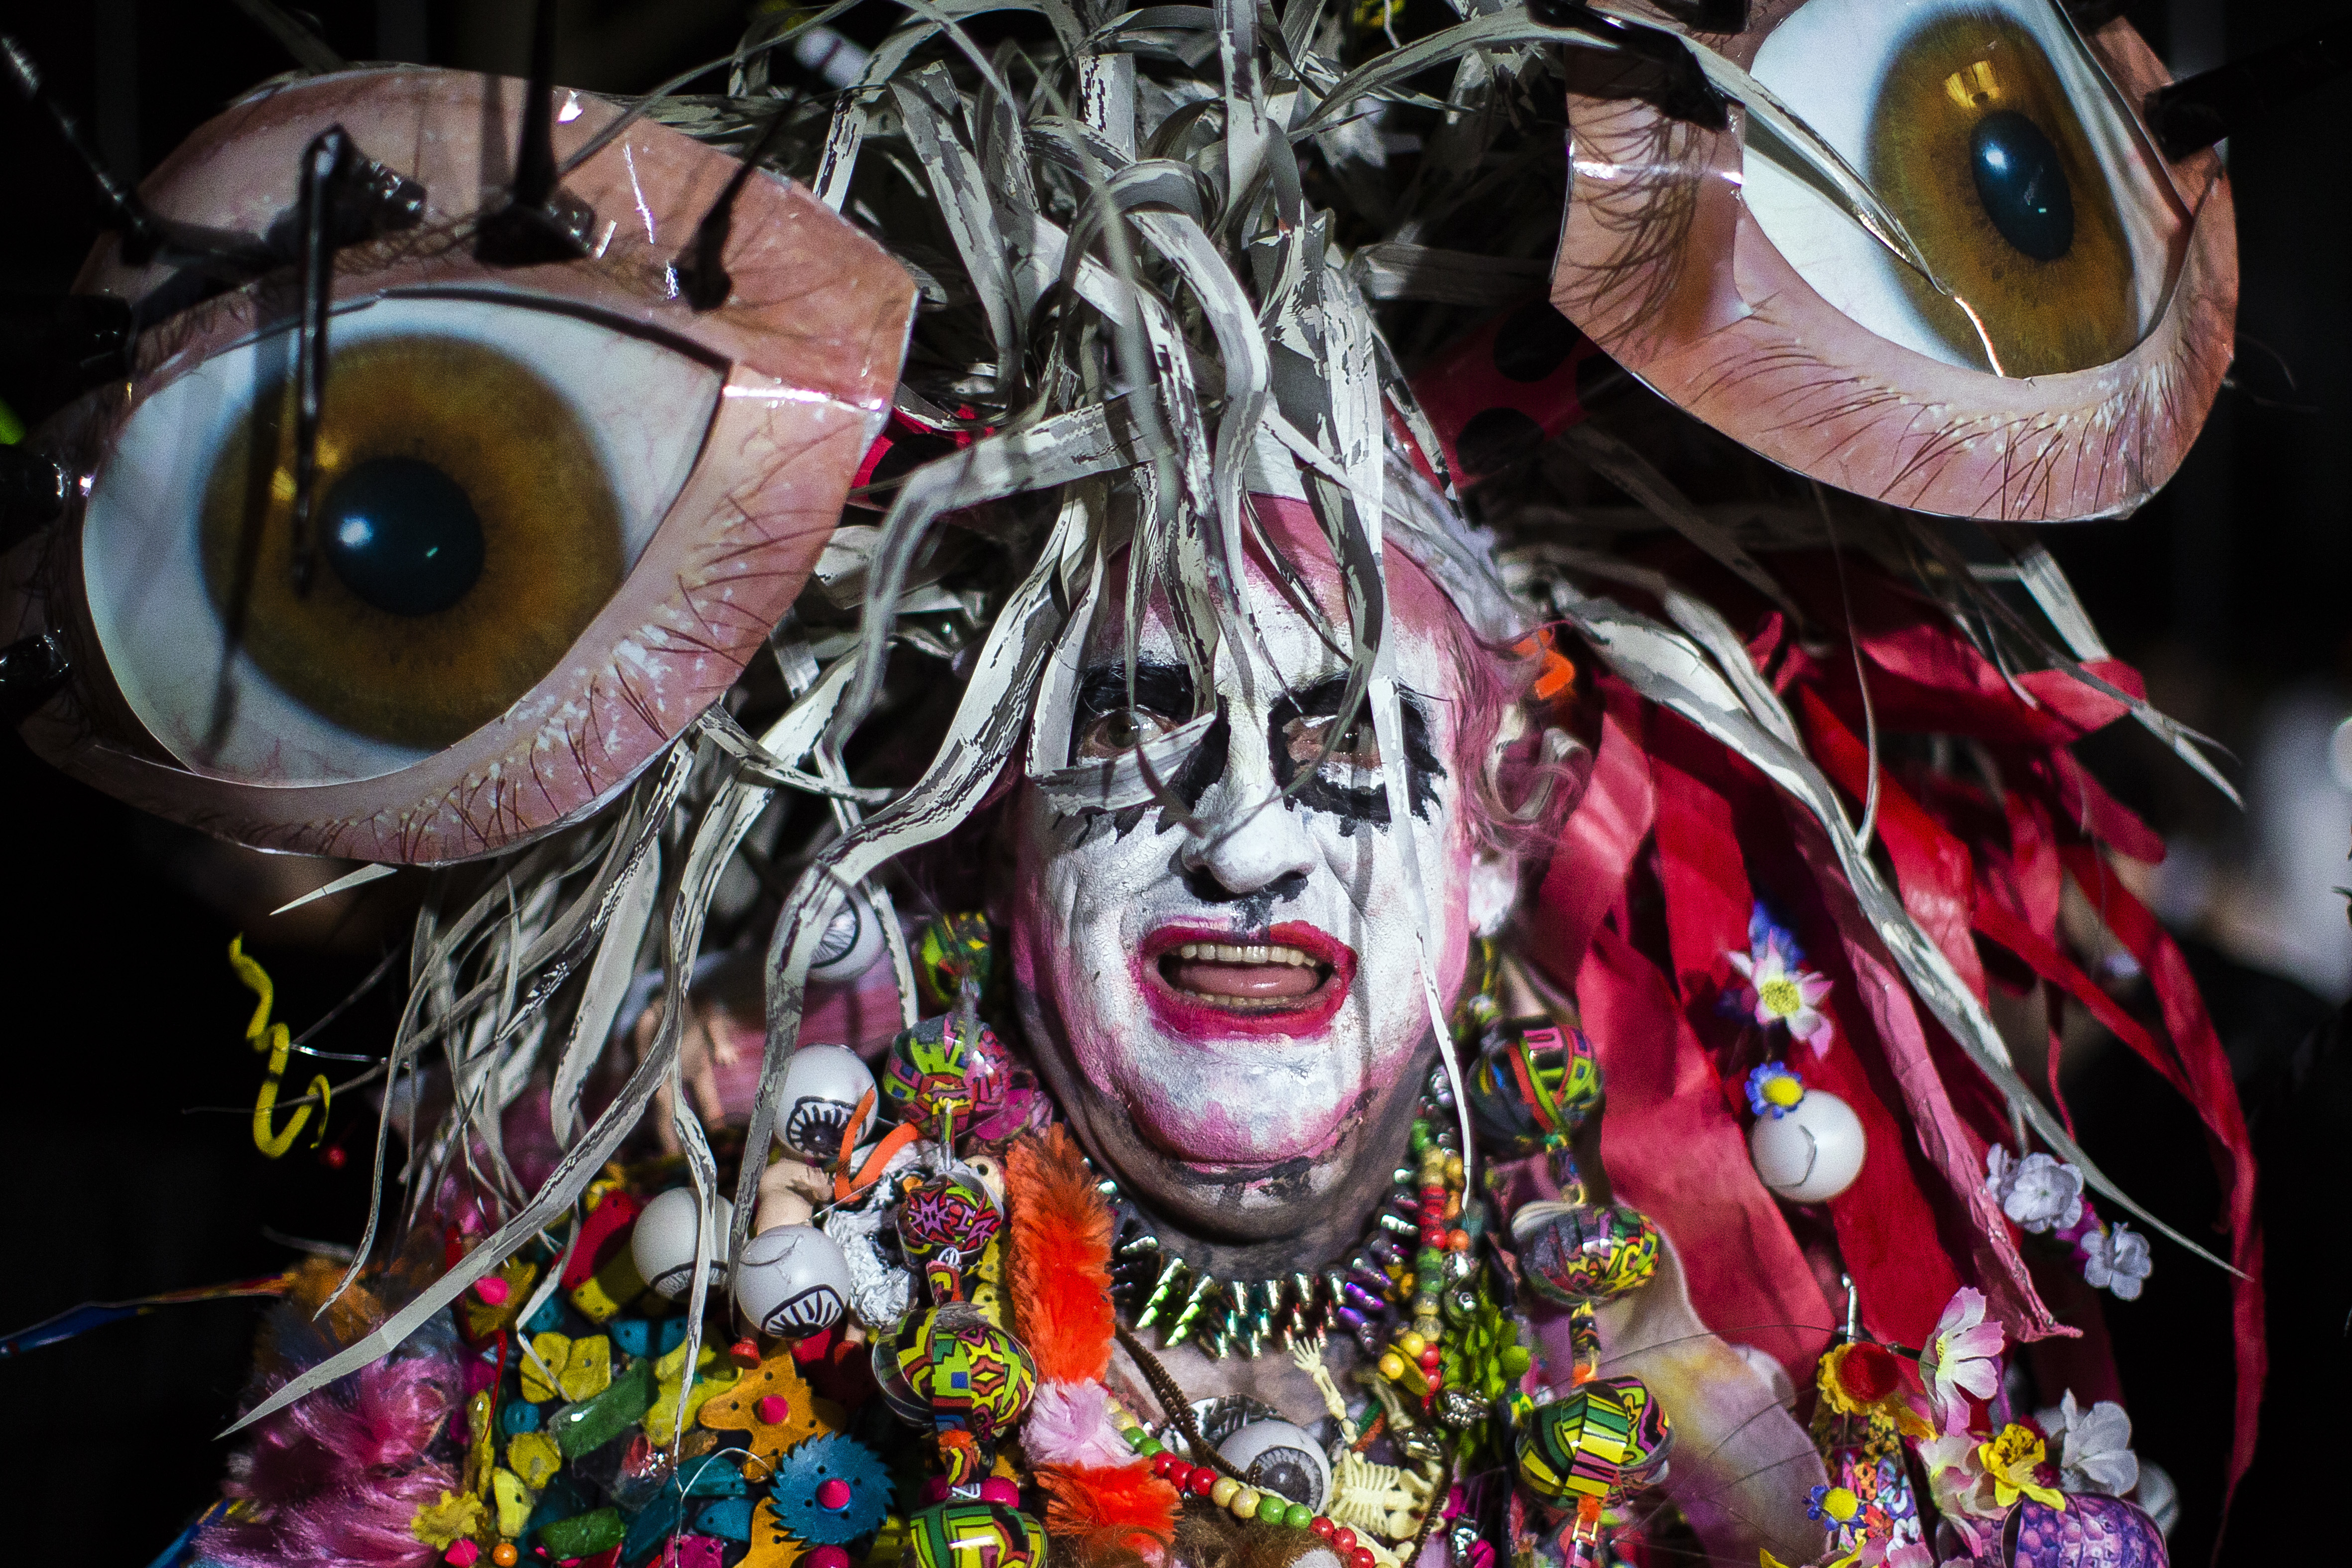 """<div class=""""meta image-caption""""><div class=""""origin-logo origin-image none""""><span>none</span></div><span class=""""caption-text"""">A reveler poses for a pictures as he marches during the Greenwich Village Halloween Parade in New York, Monday, Oct. 31, 2016. (AP Photo/Andres Kudacki)</span></div>"""